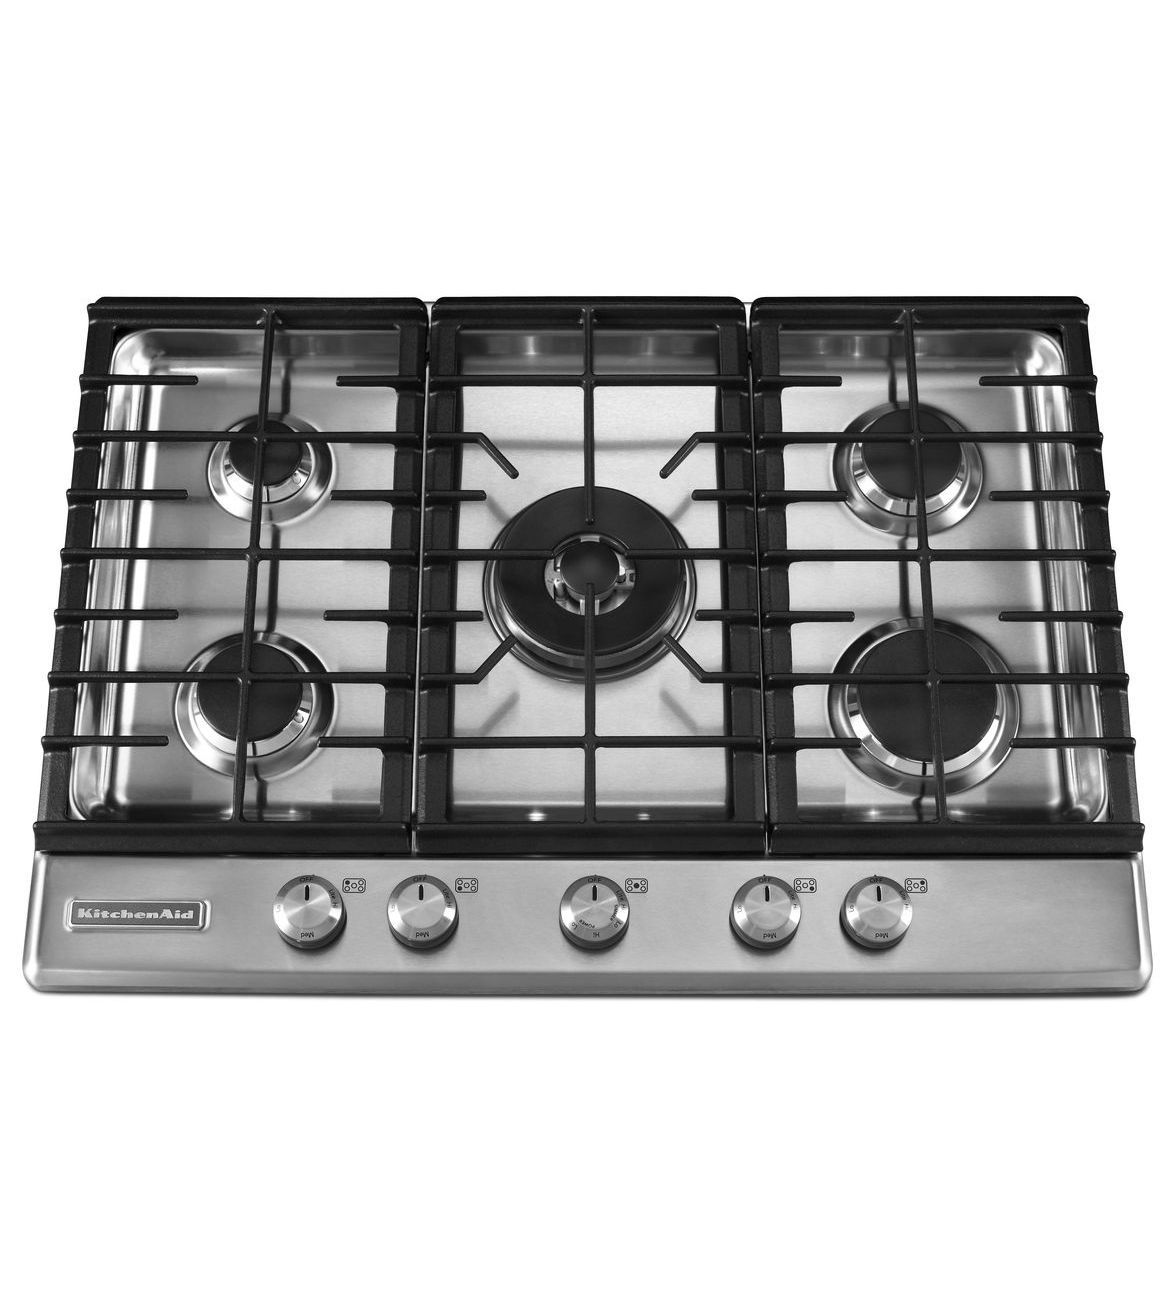 kitchen aid gas cooktop countertops types kitchenaid stove tops design inspiration furniture for cook home interiors across the rh infrachemsolution com